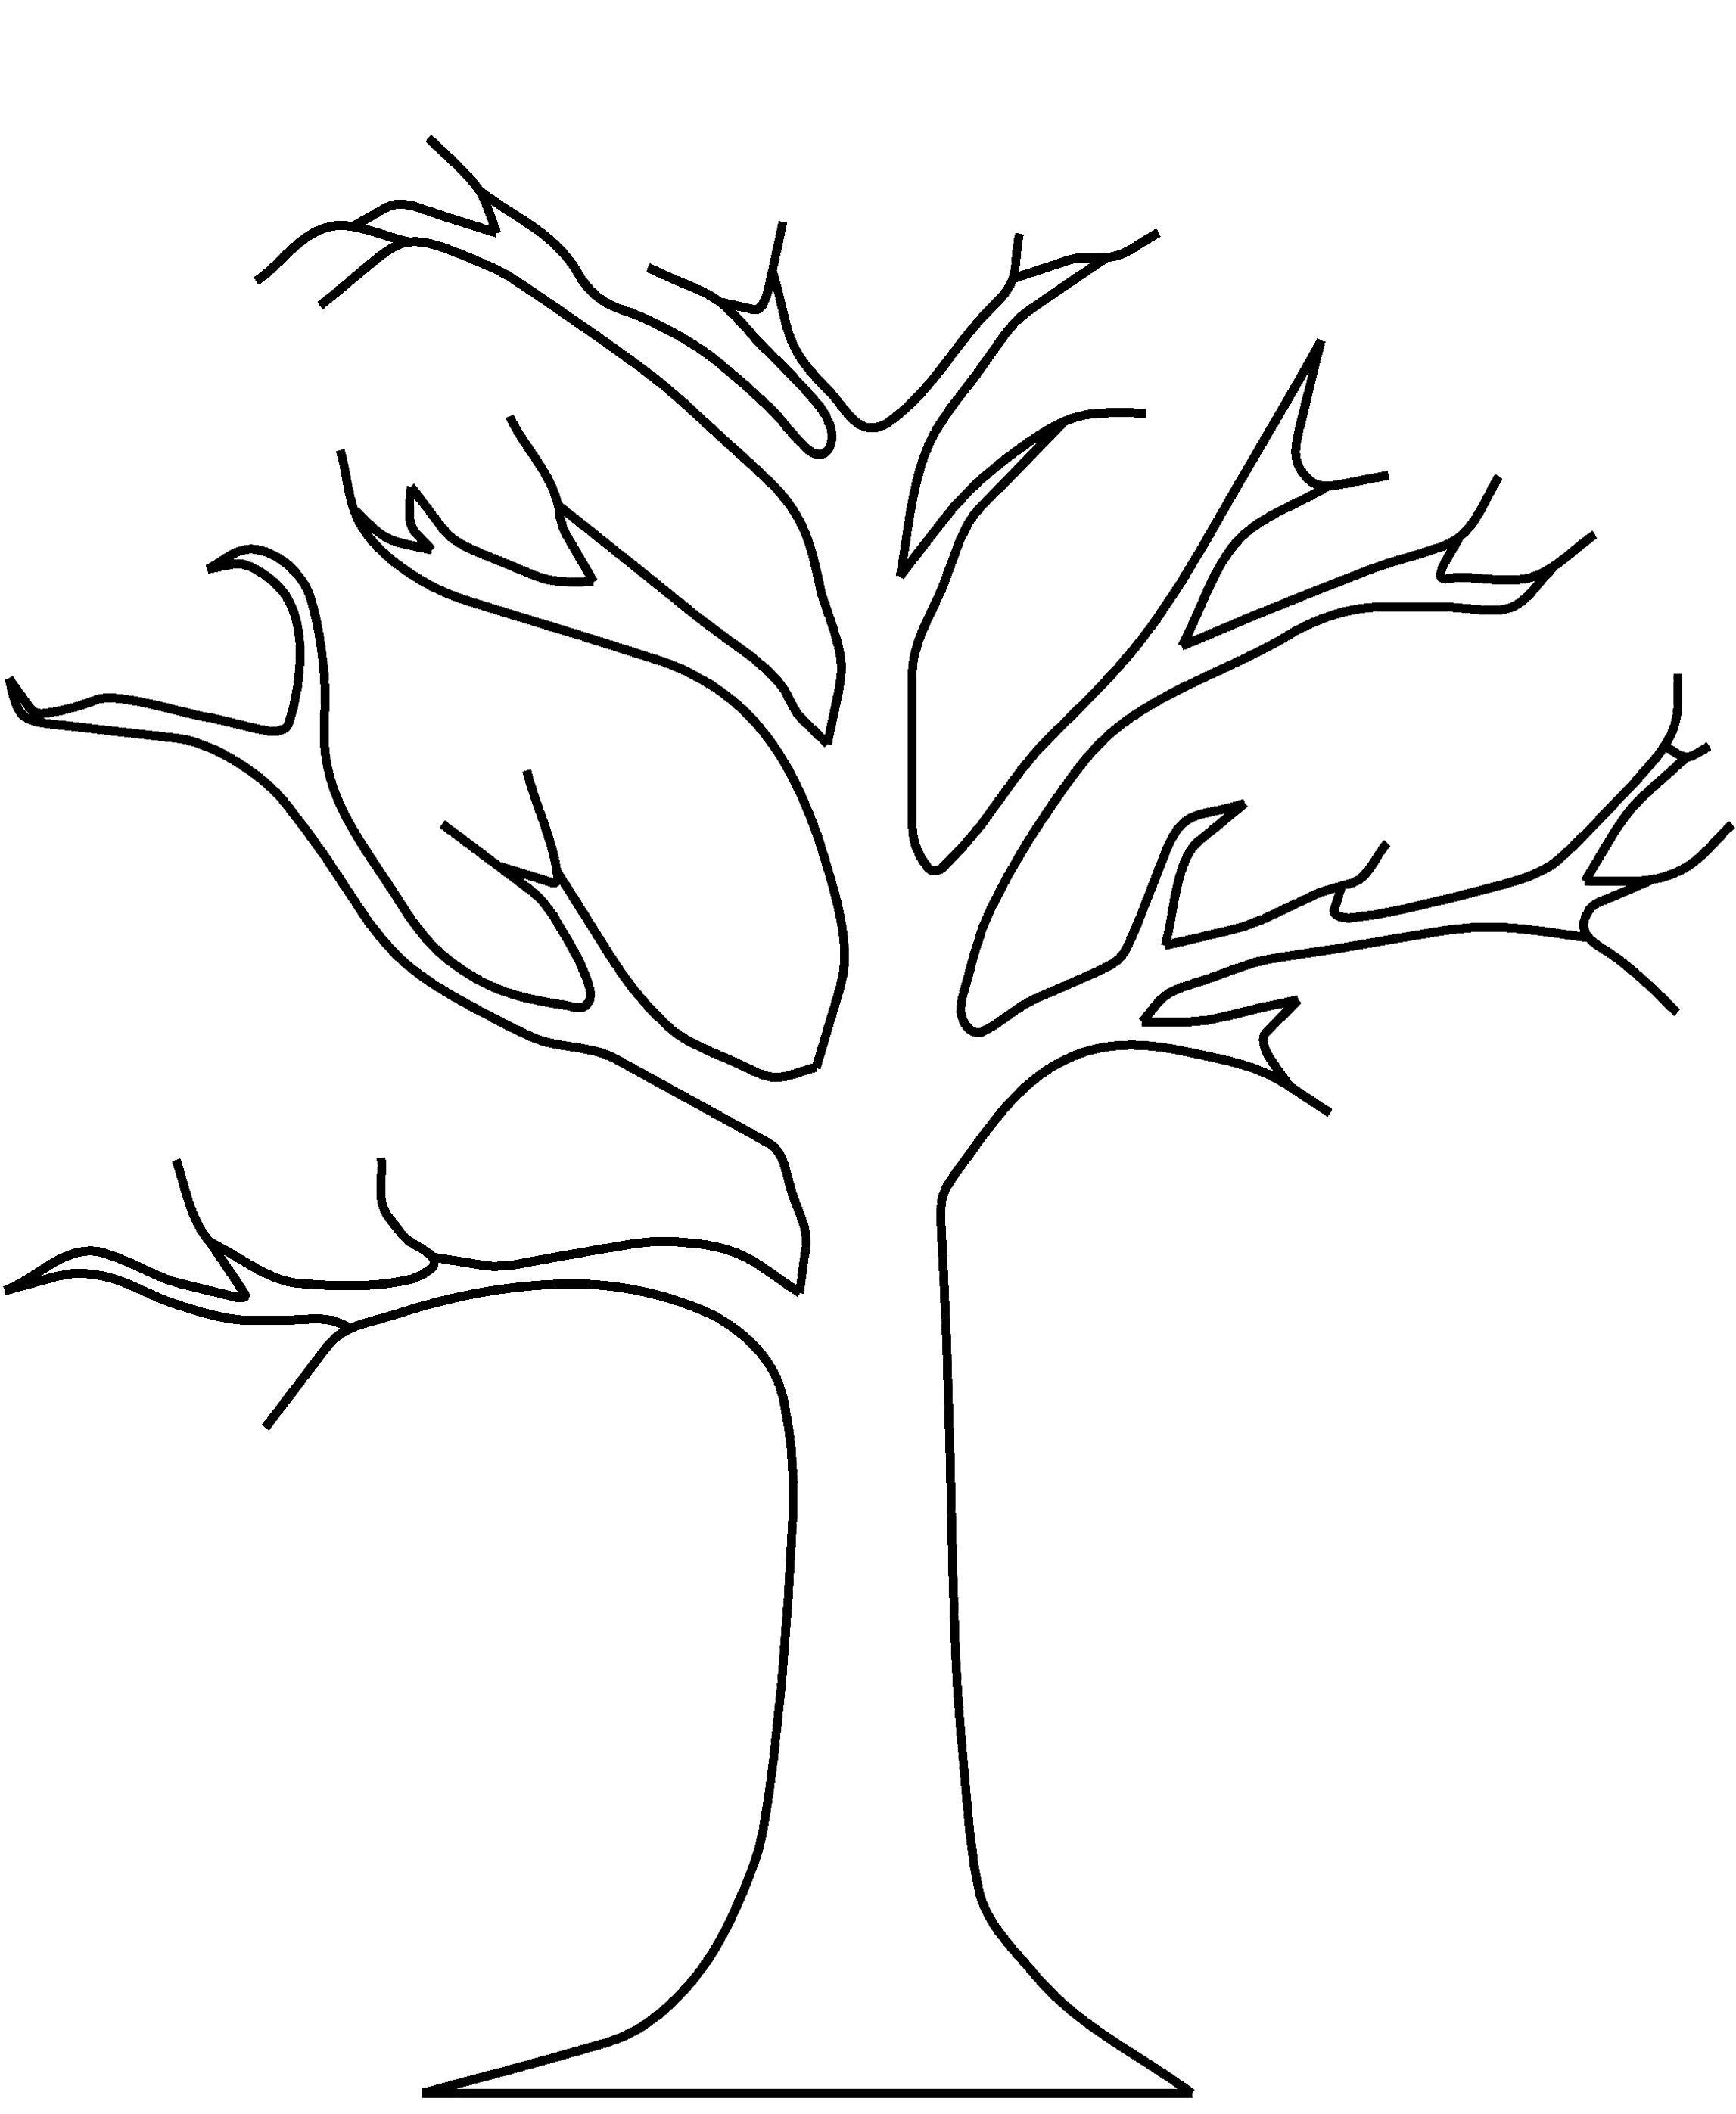 Trees Without Leaves Drawing